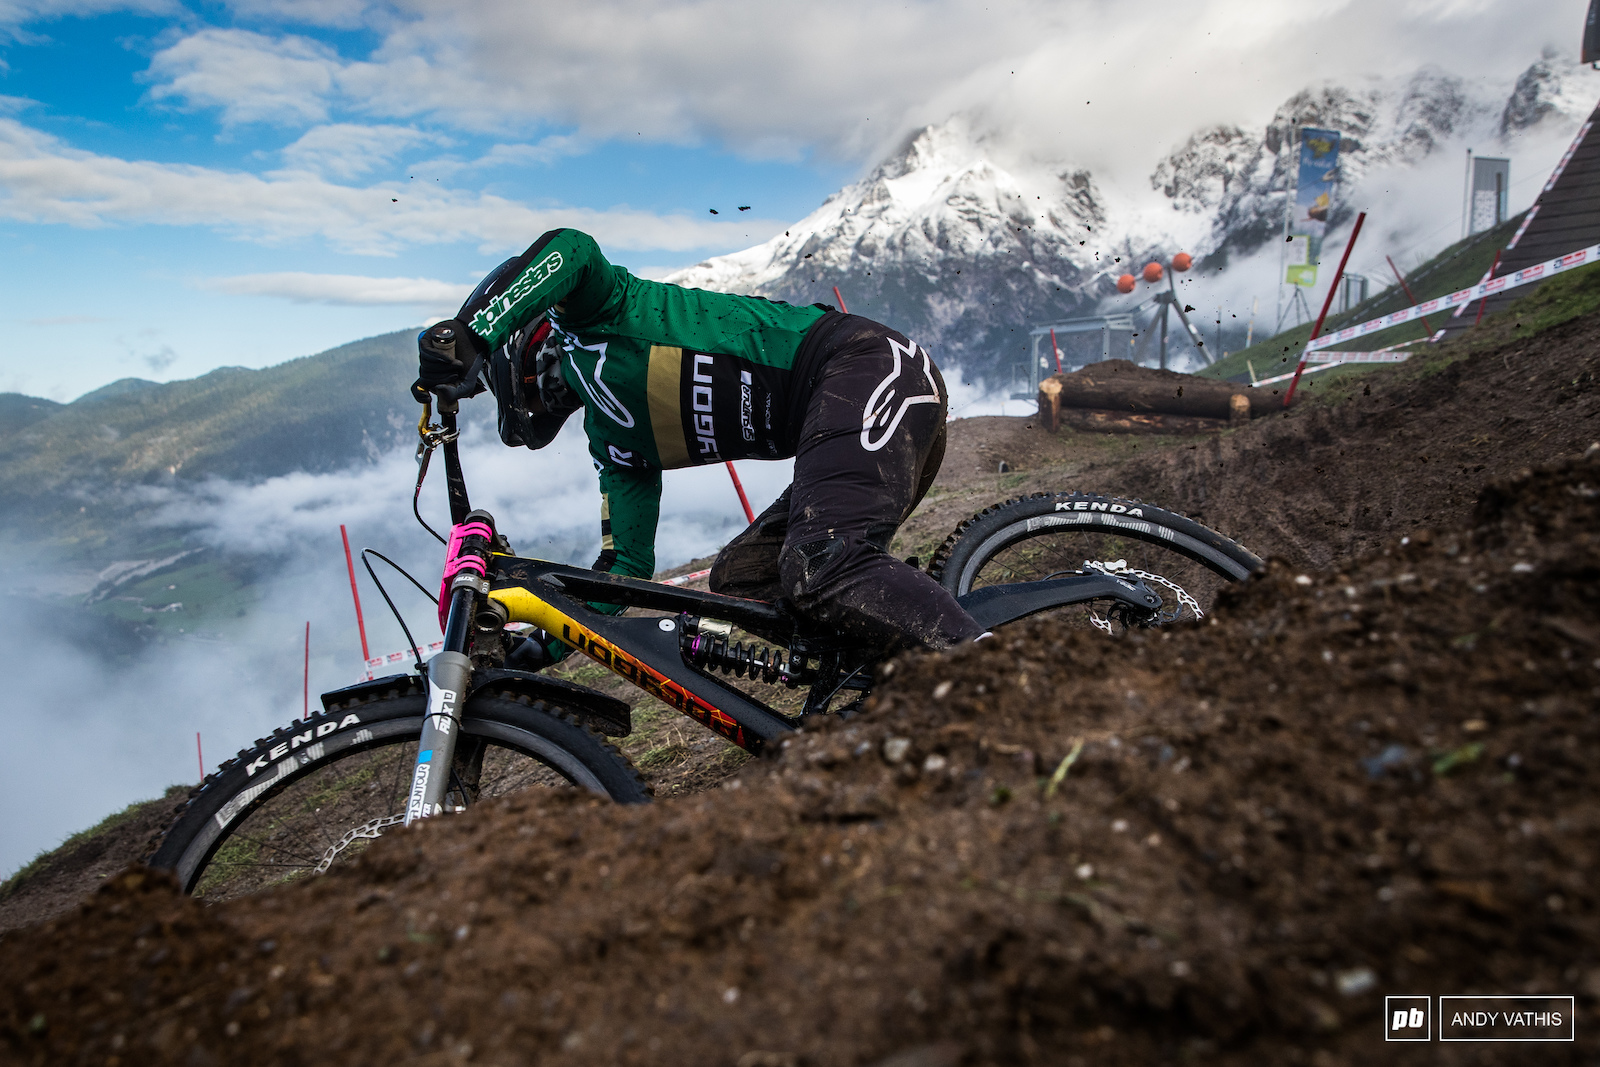 Tracey Hannah will be out for revenge after missing out on a Crankworx win to Vali Holl in Innsbruck.